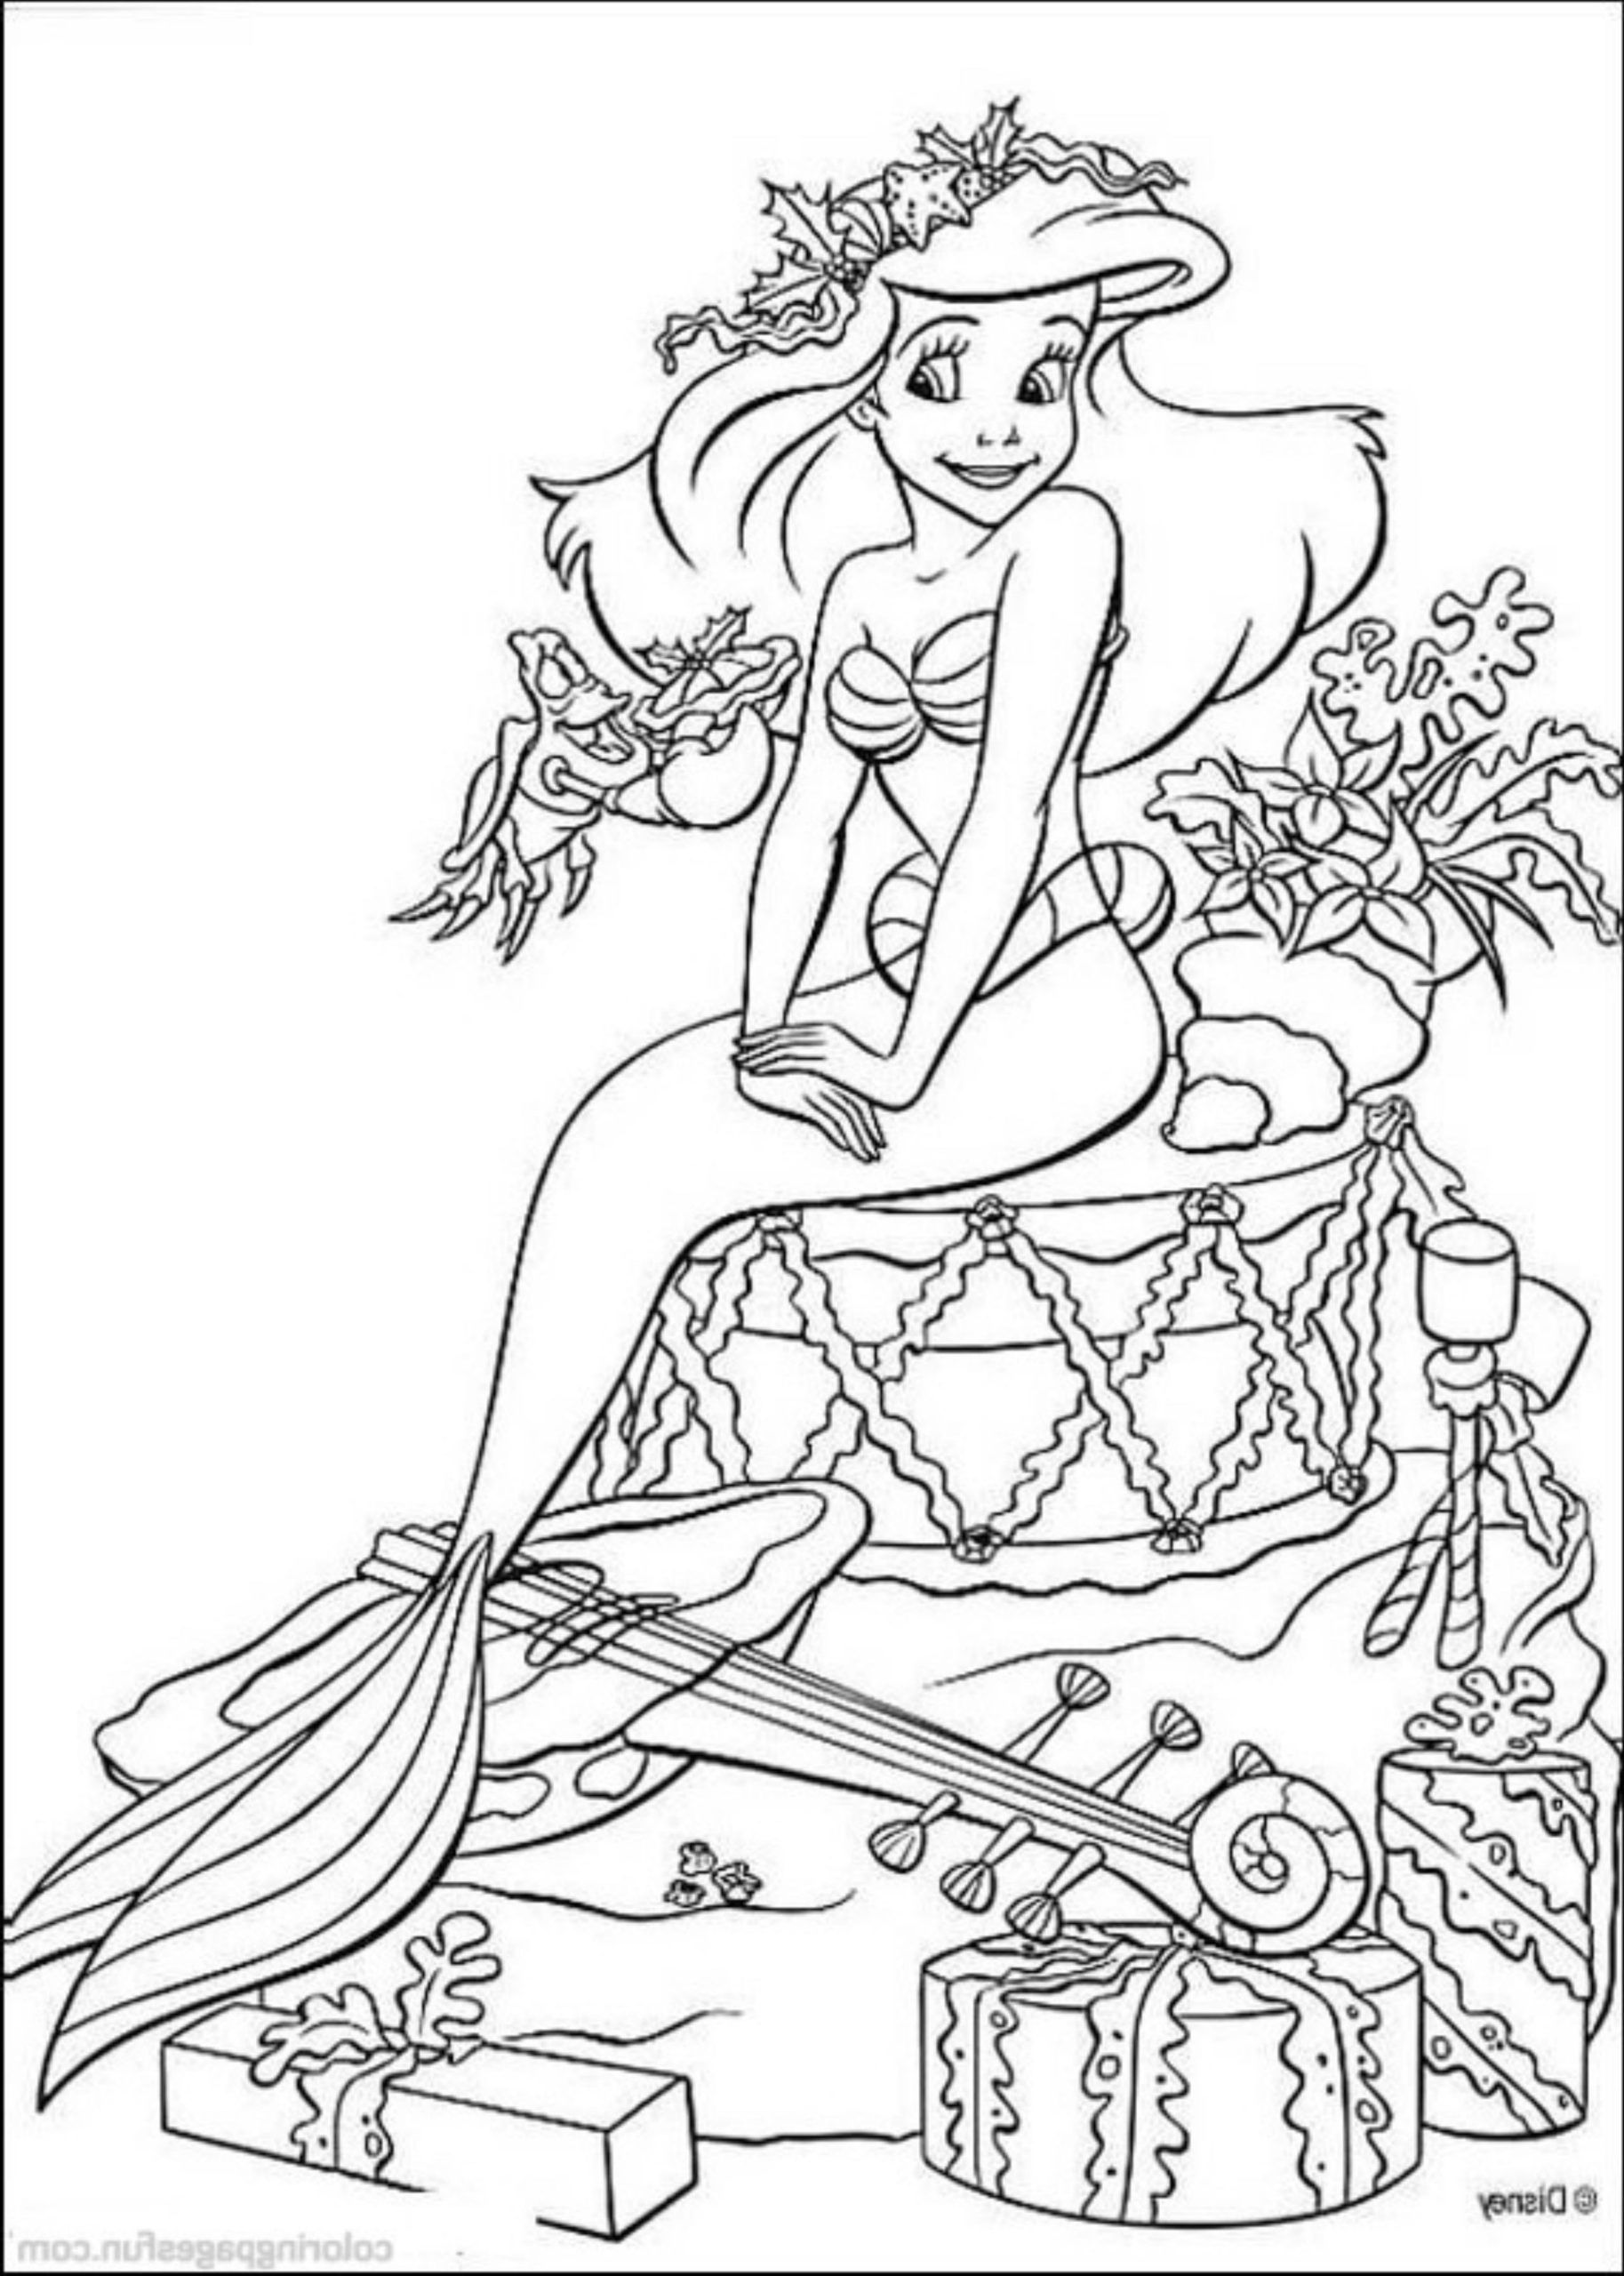 mermaid coloring pages online the little mermaid coloring pages unique coloring page pages mermaid online coloring